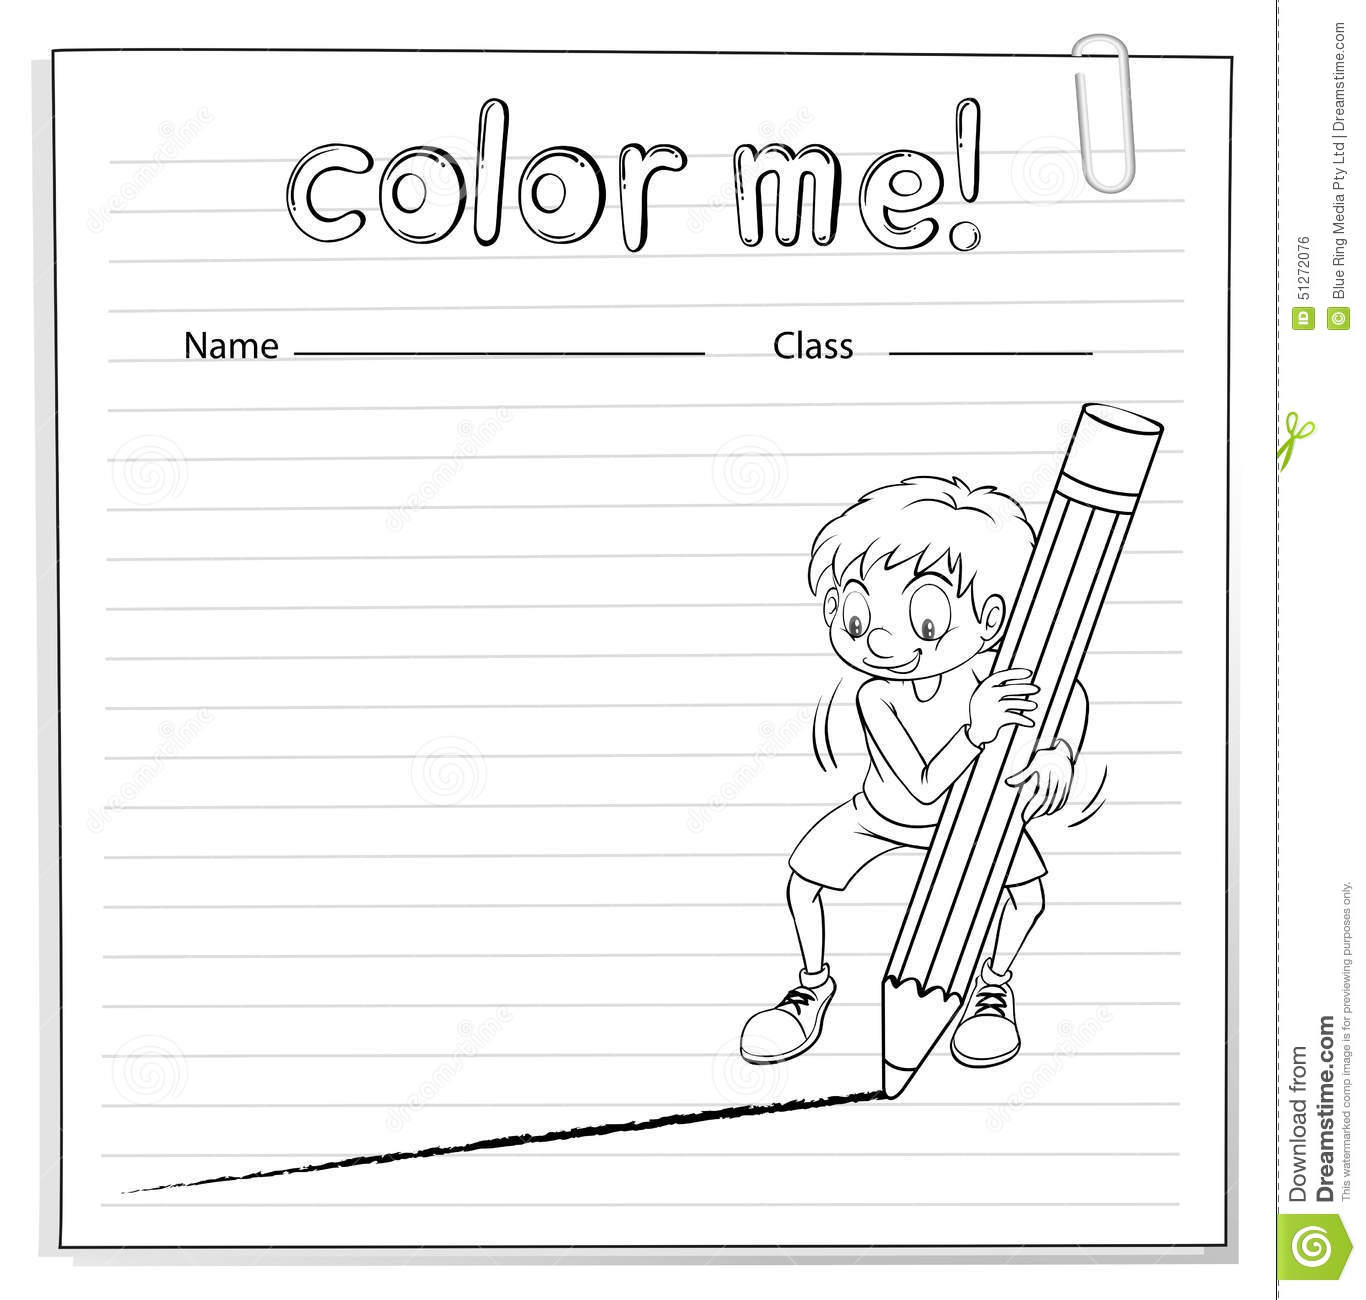 Coloring Worksheet With A Boy Drawing A Line Stock Vector